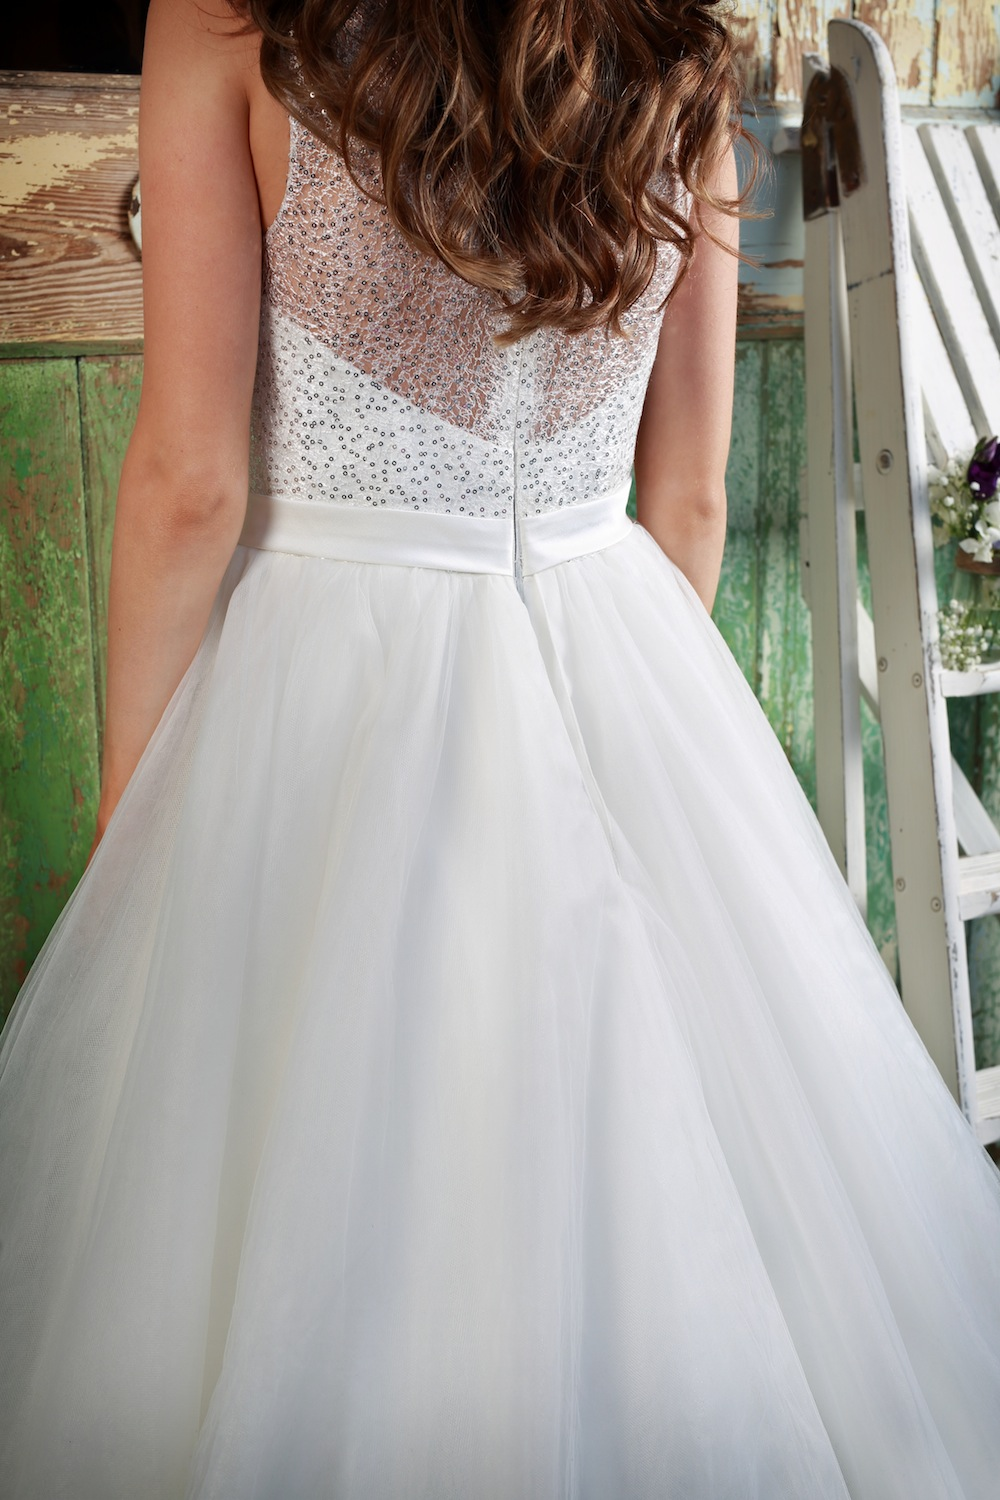 Amanda Wyatt Wedding Gown : Luna - silver sequin bodice and a full ball gown skirt